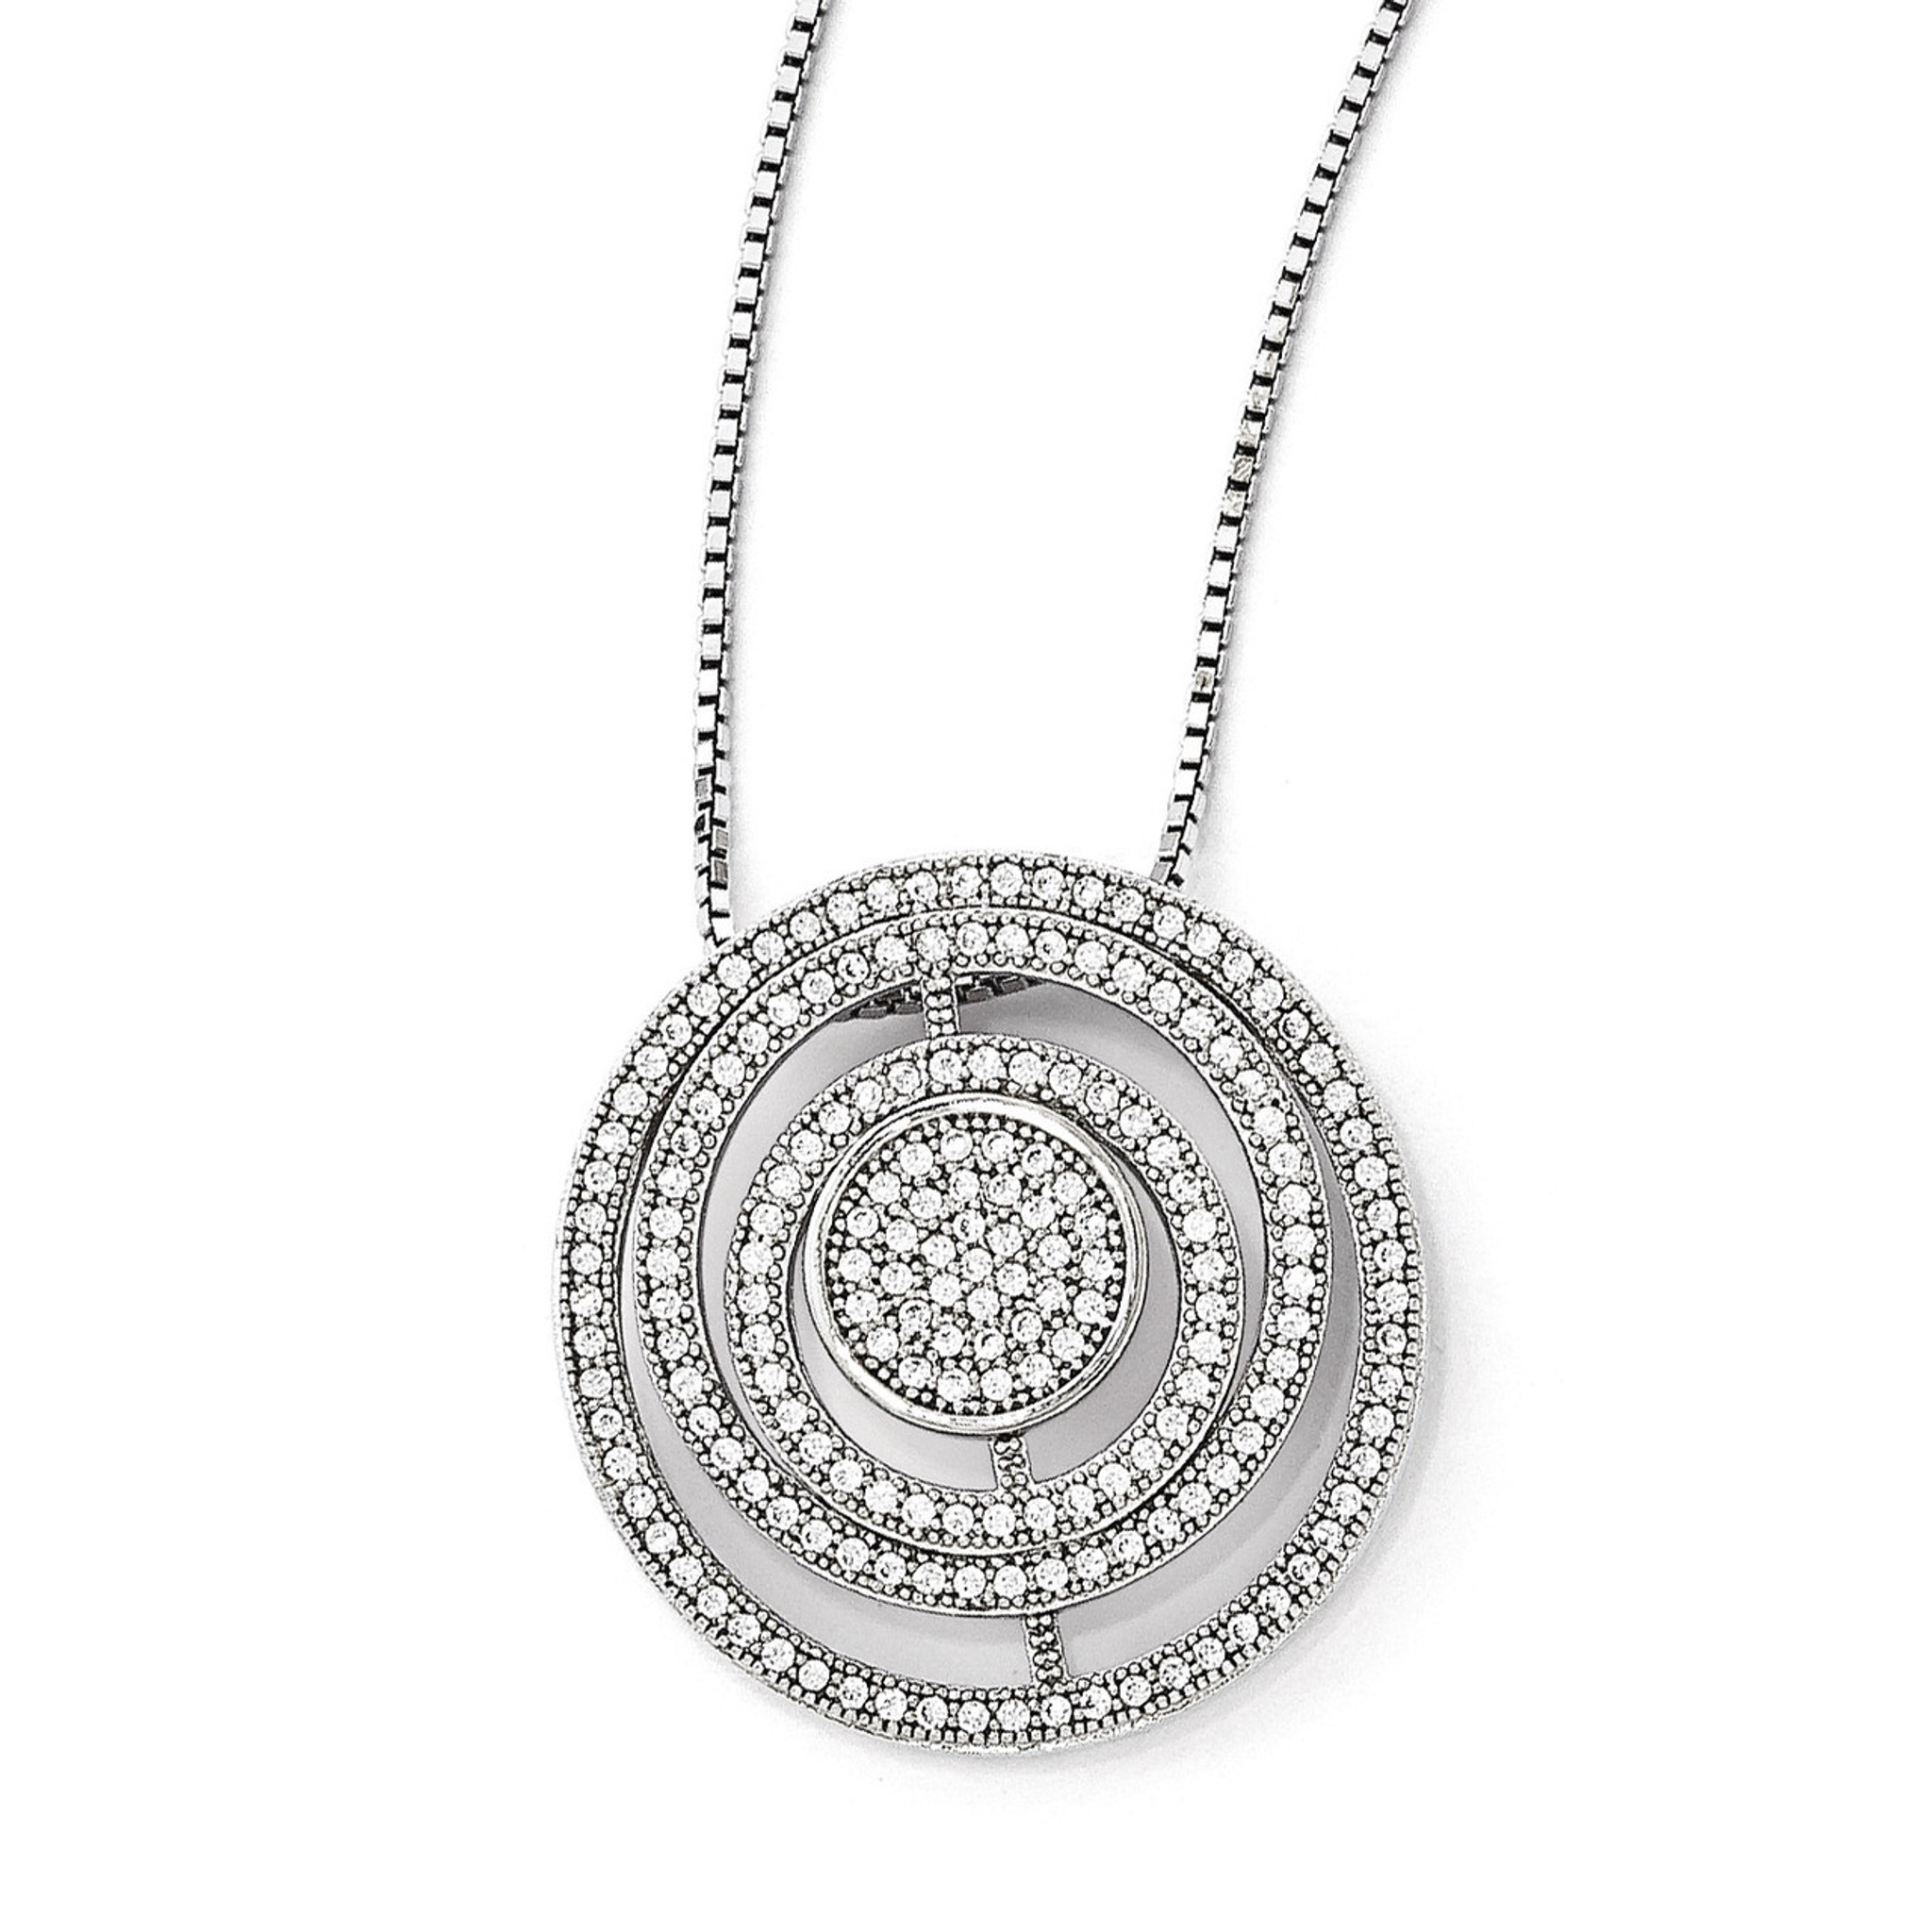 Brilliant Embers Sterling Silver Rhodium-plated Polished CZ Pendant Necklace 18 2 Extender